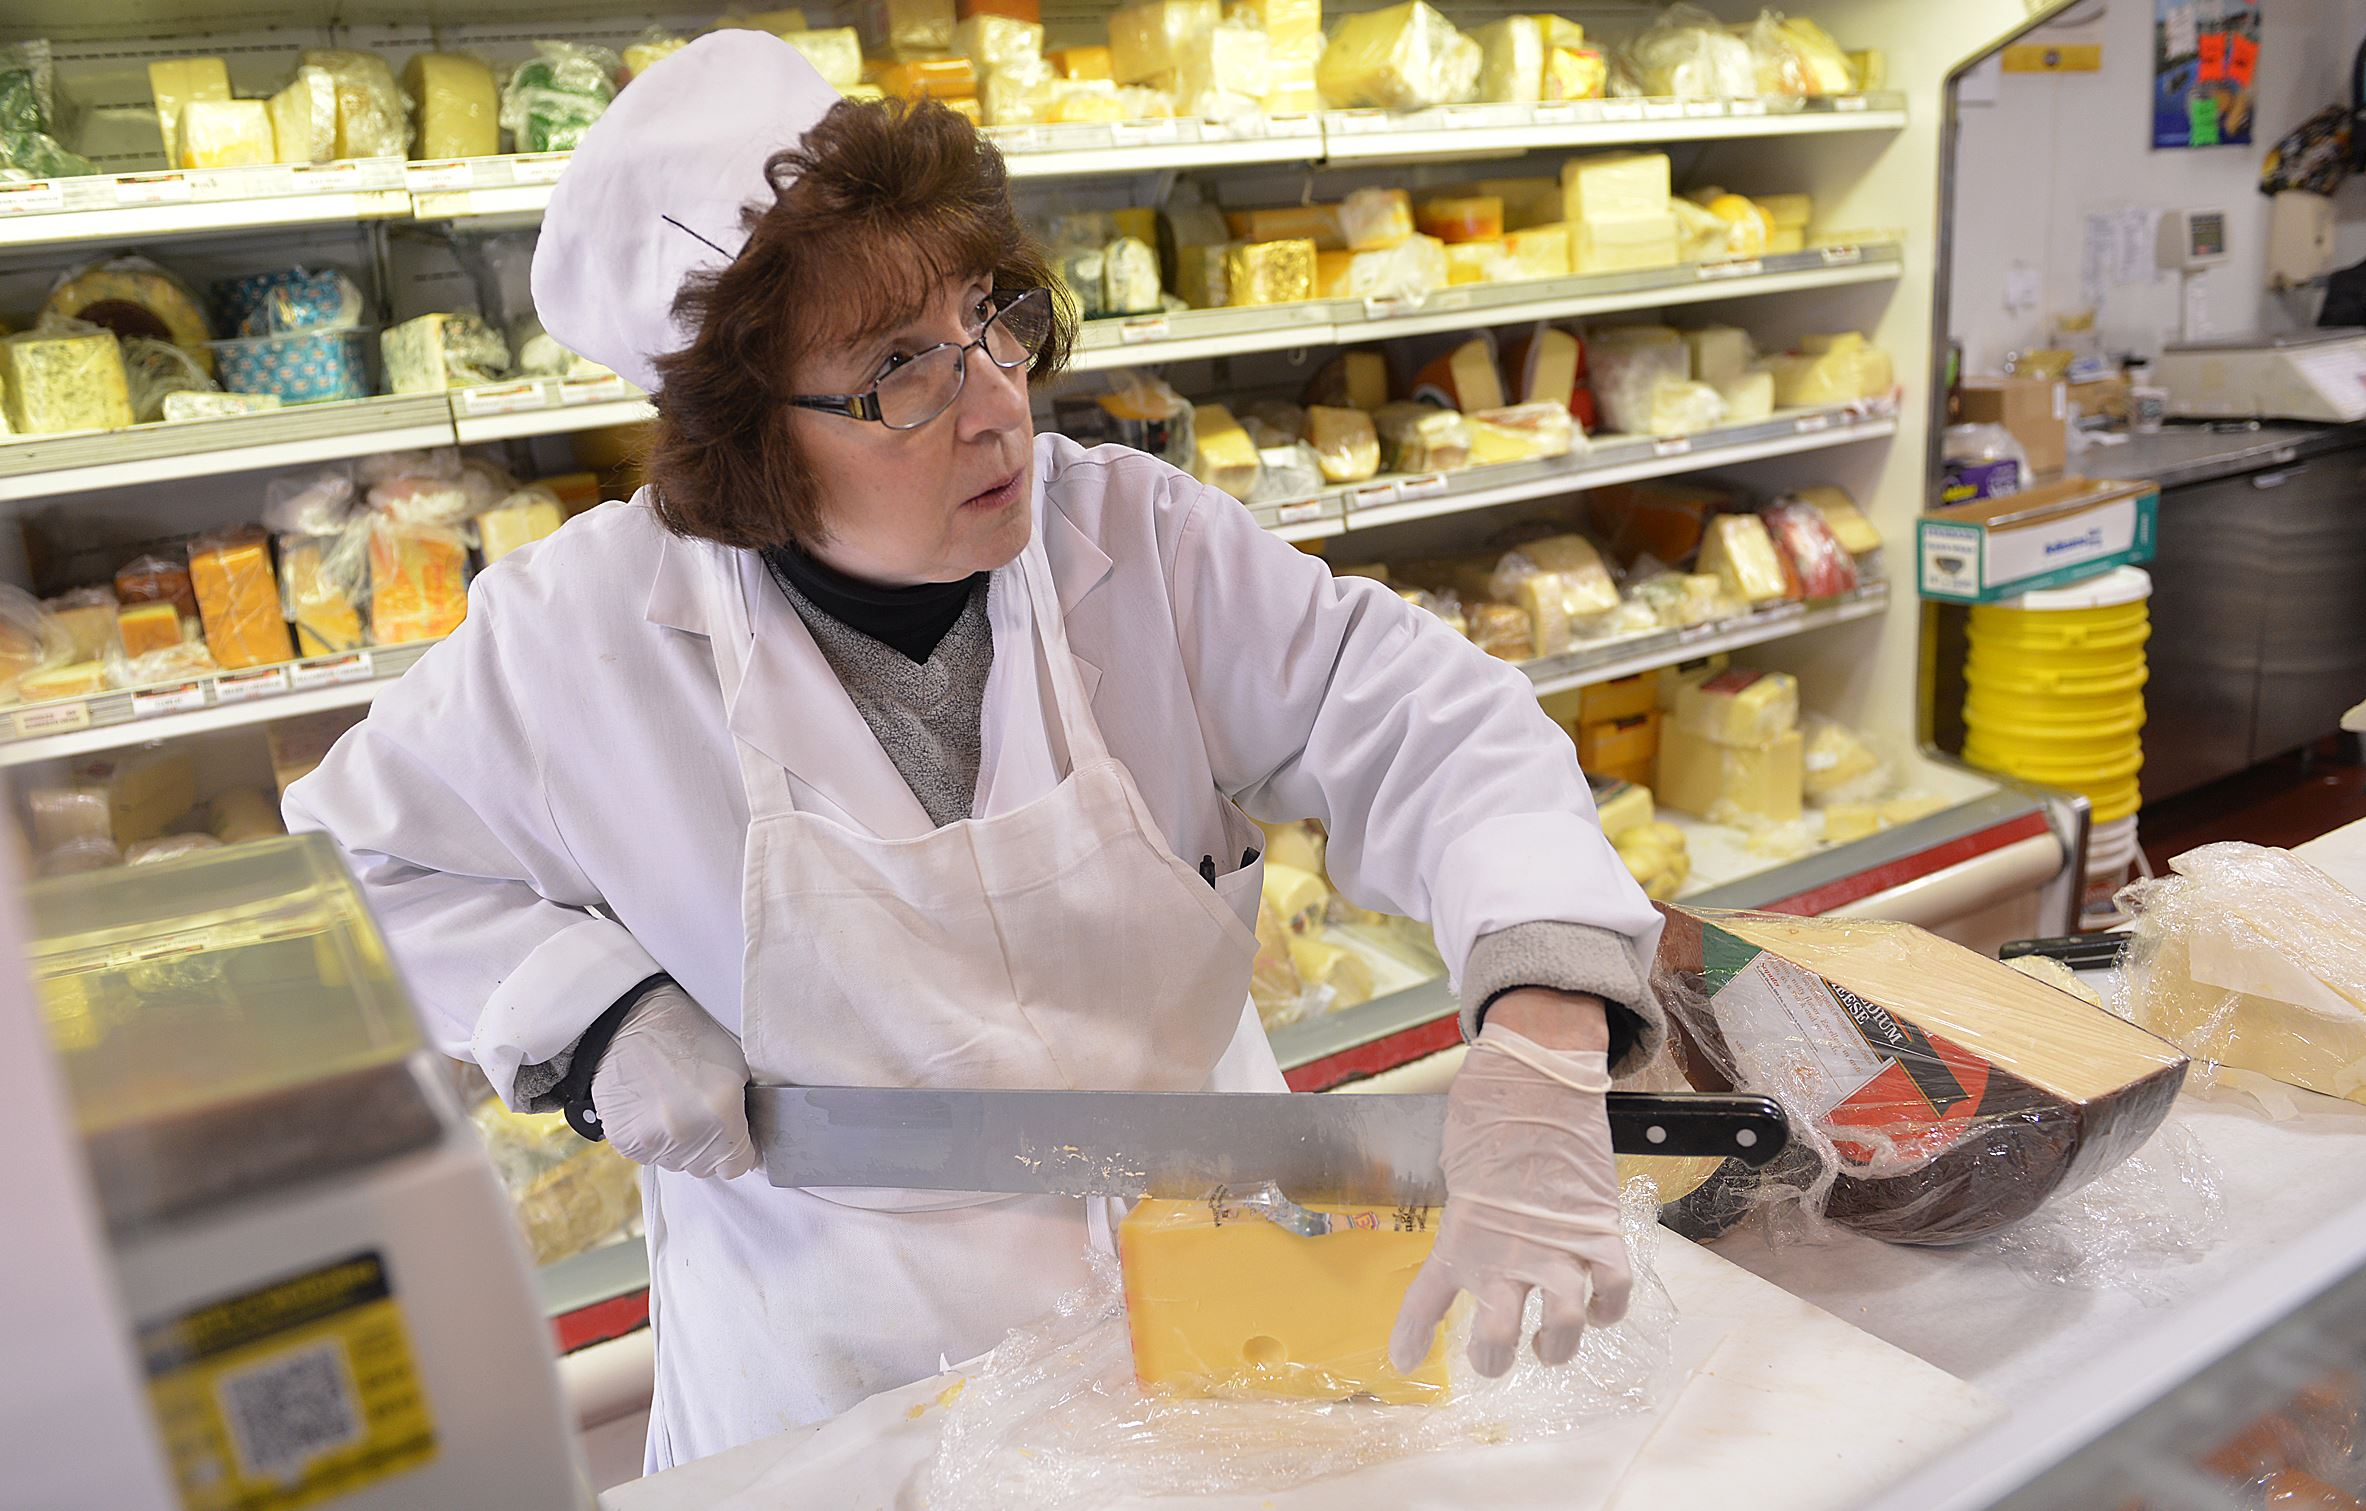 Meet Carol 'Dearheart' Pascuzzi, the ever-cheerful cheese expert of Penn Mac